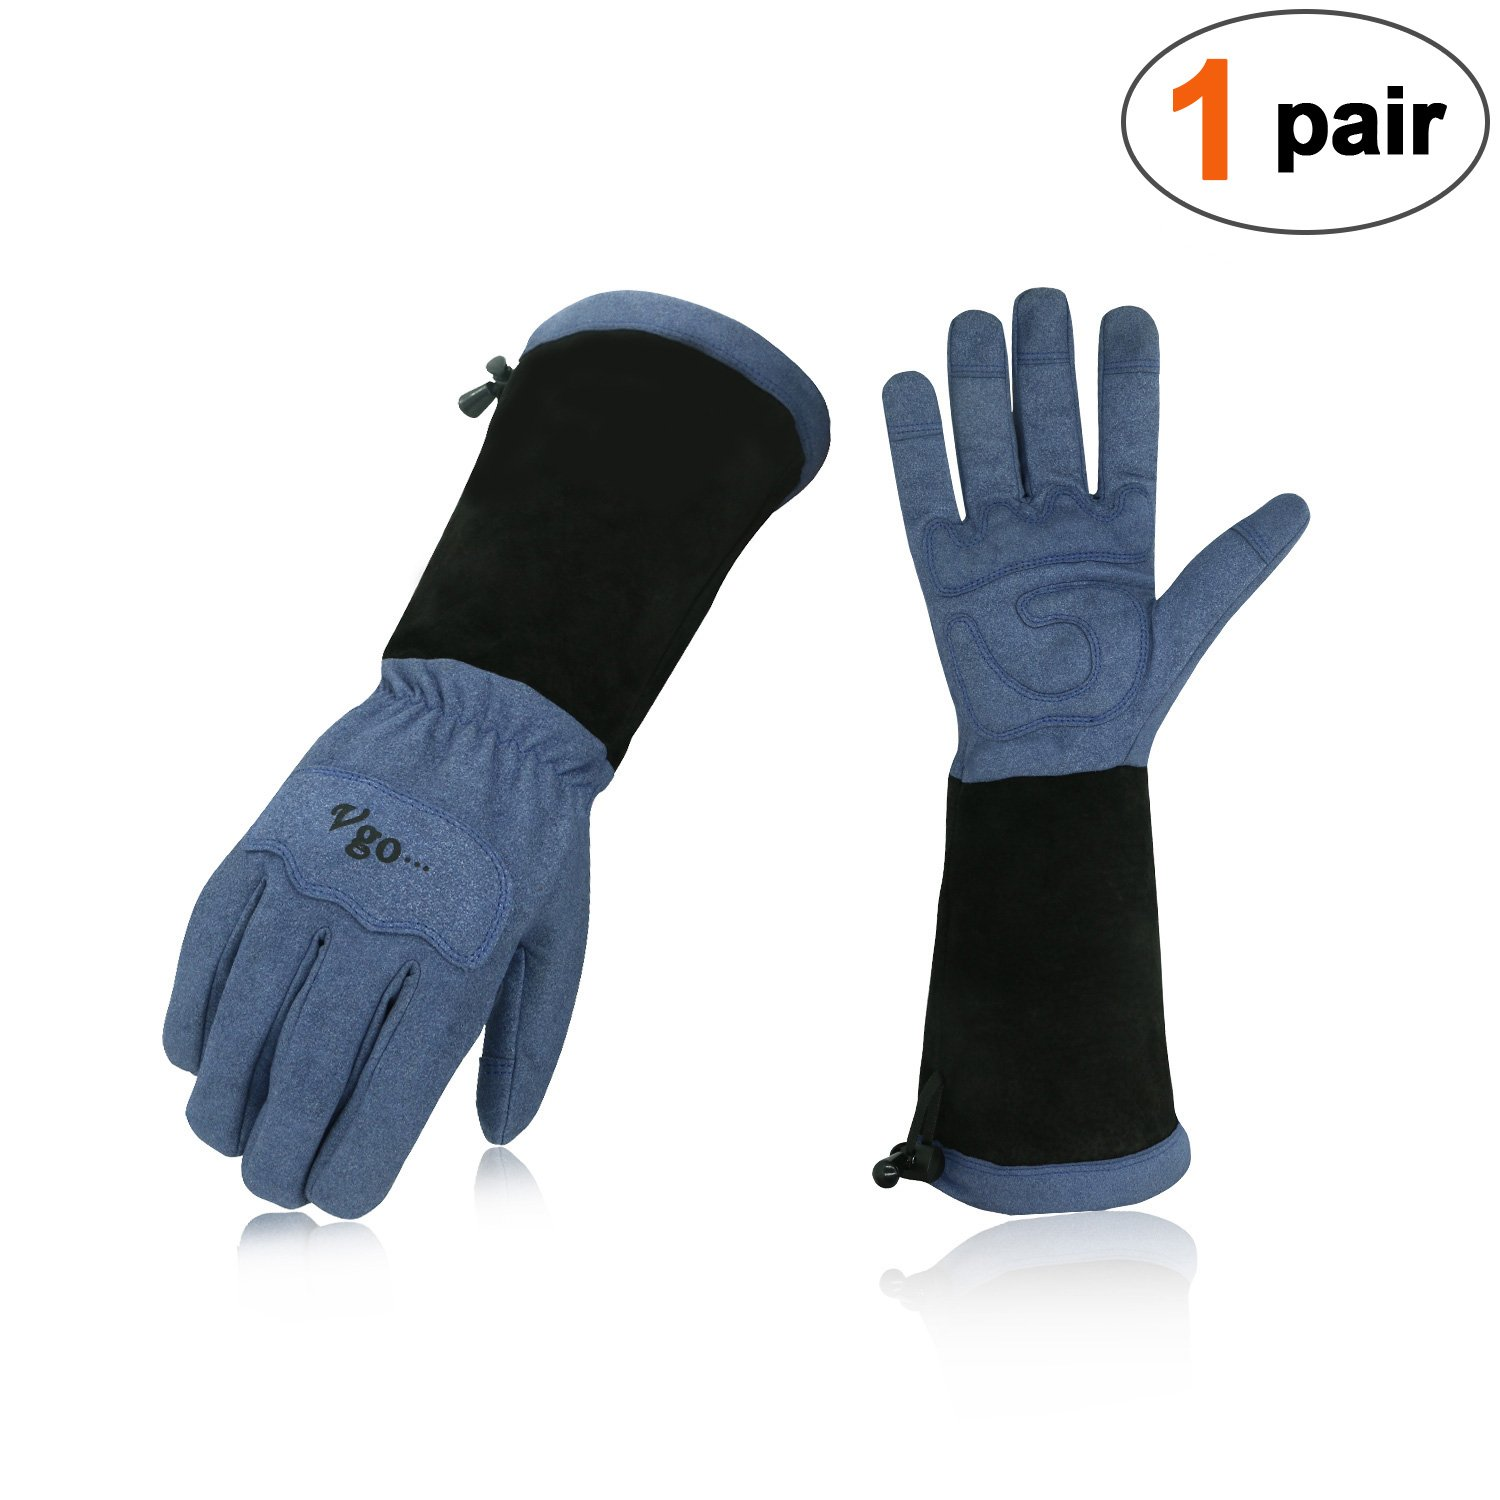 Vgo... Men's Synthetic Leather Palm with Long Pig Split Leather Cuff Rose Garden Gloves (1Pair,Size L,Blue,SL6592M)